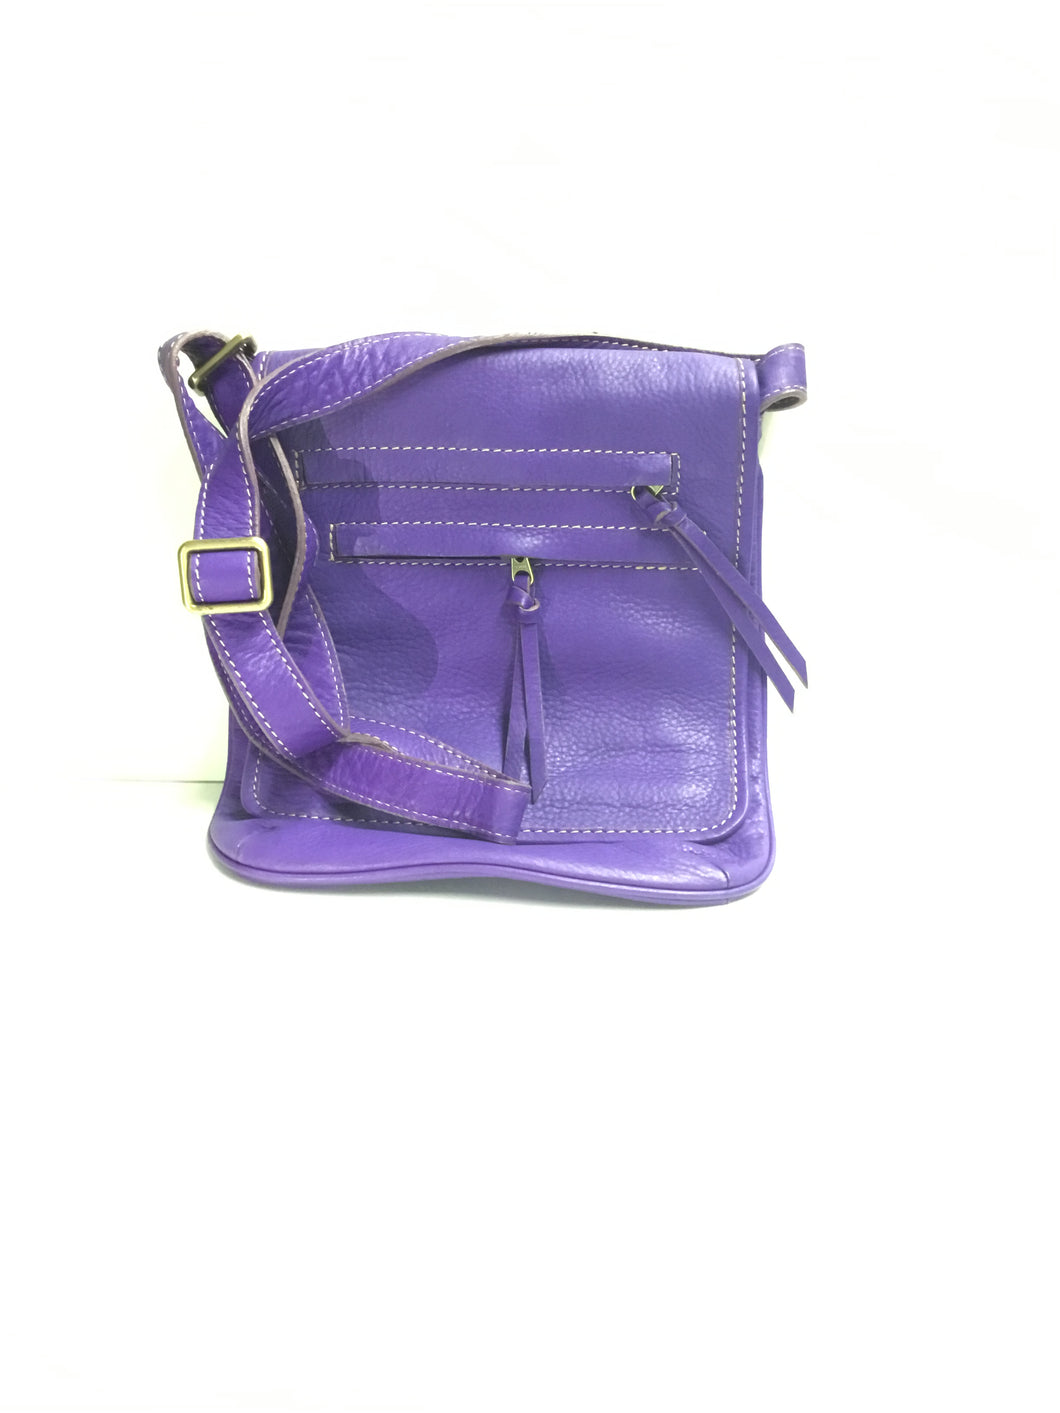 Colorful Leather Bag